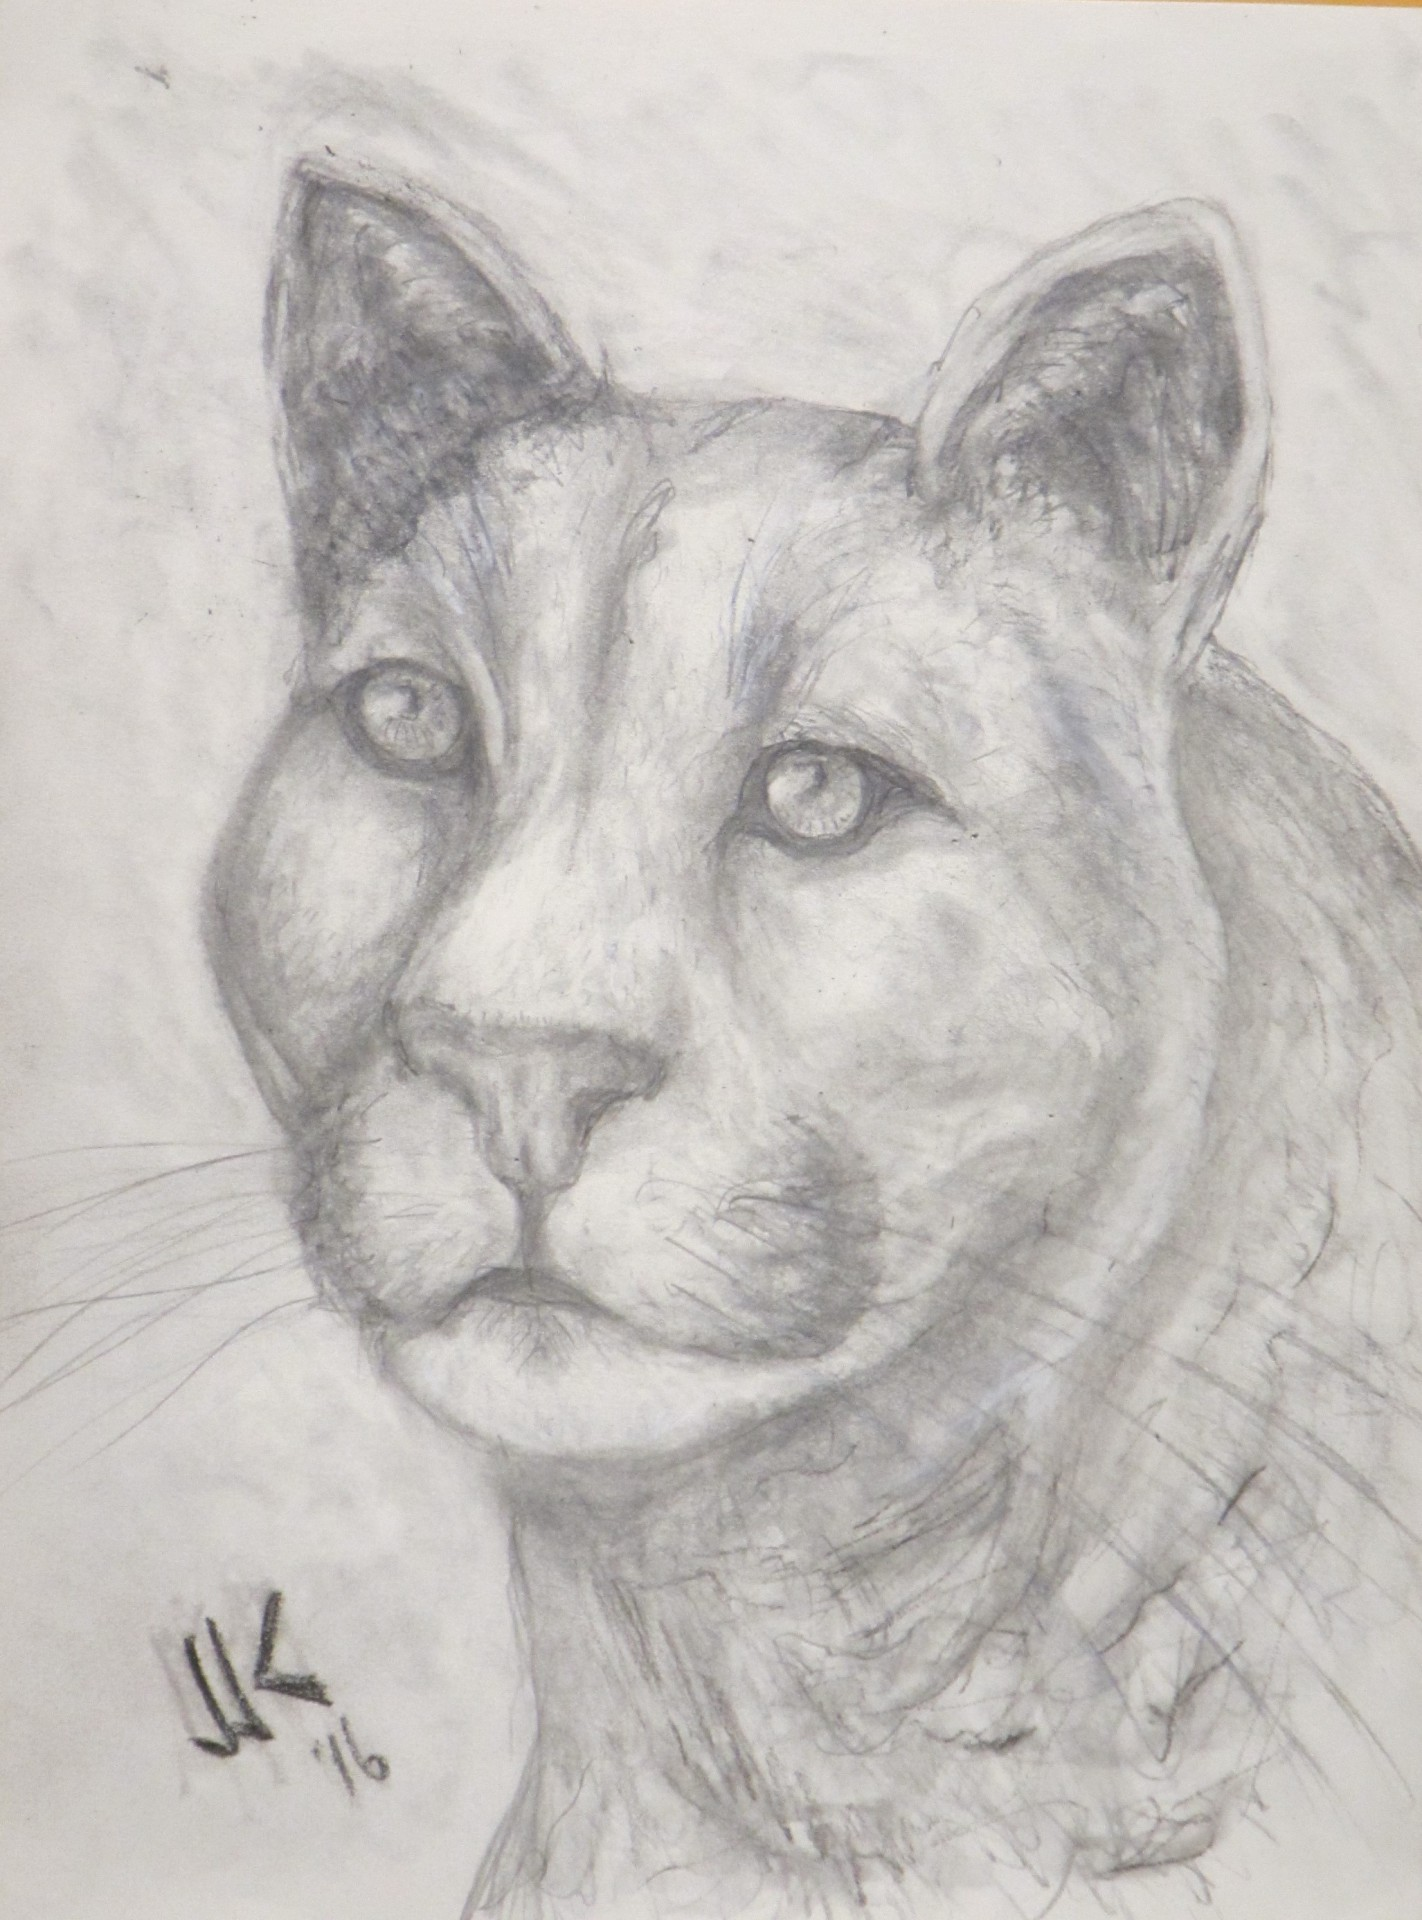 Pencil drawing of the head and shoulders of a mountain lion.